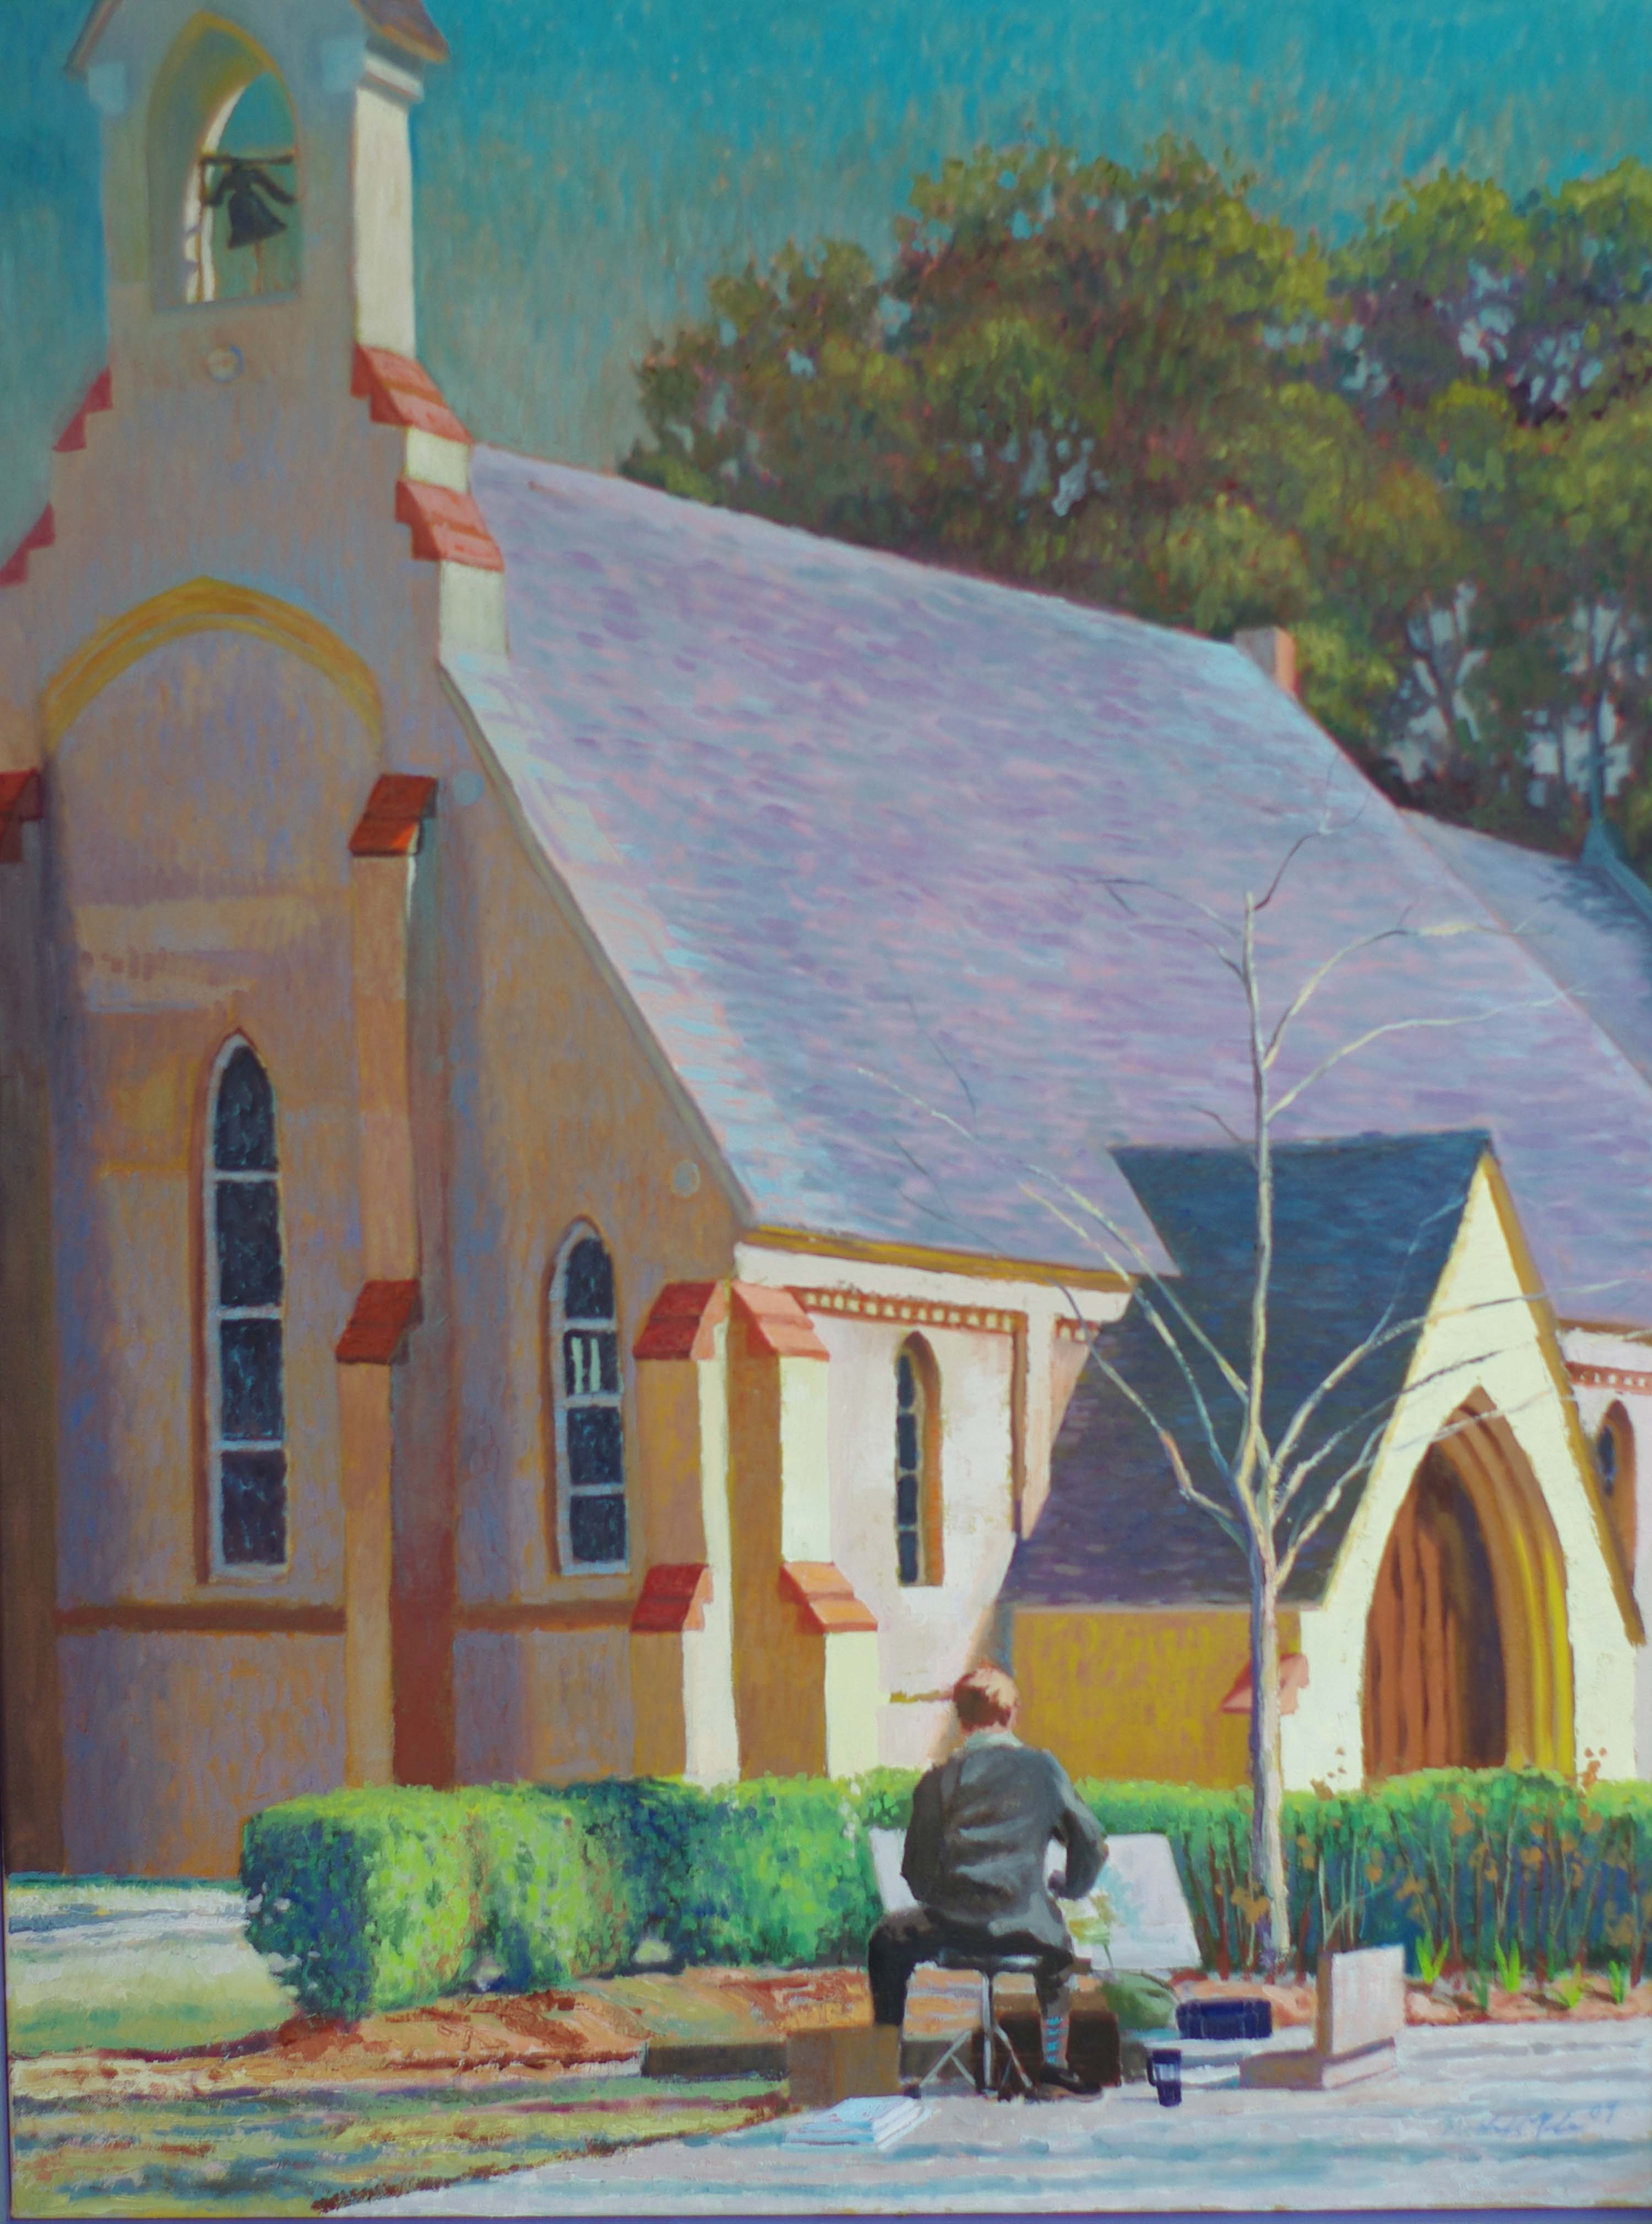 Jonathan at Chapel of the Cross, Oil on Canvas, 3'x4'